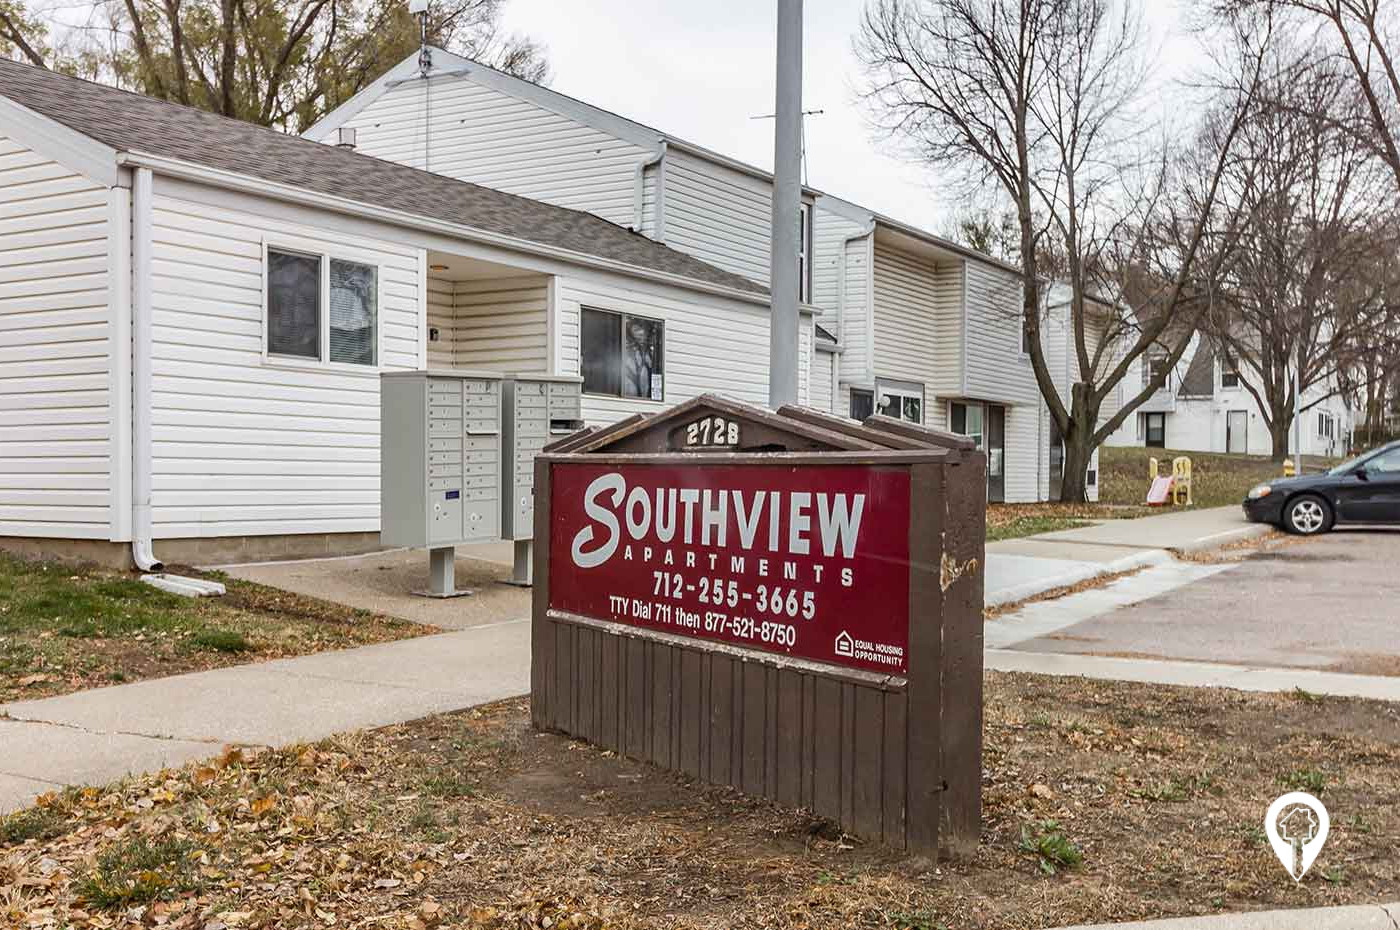 Southview Apartments